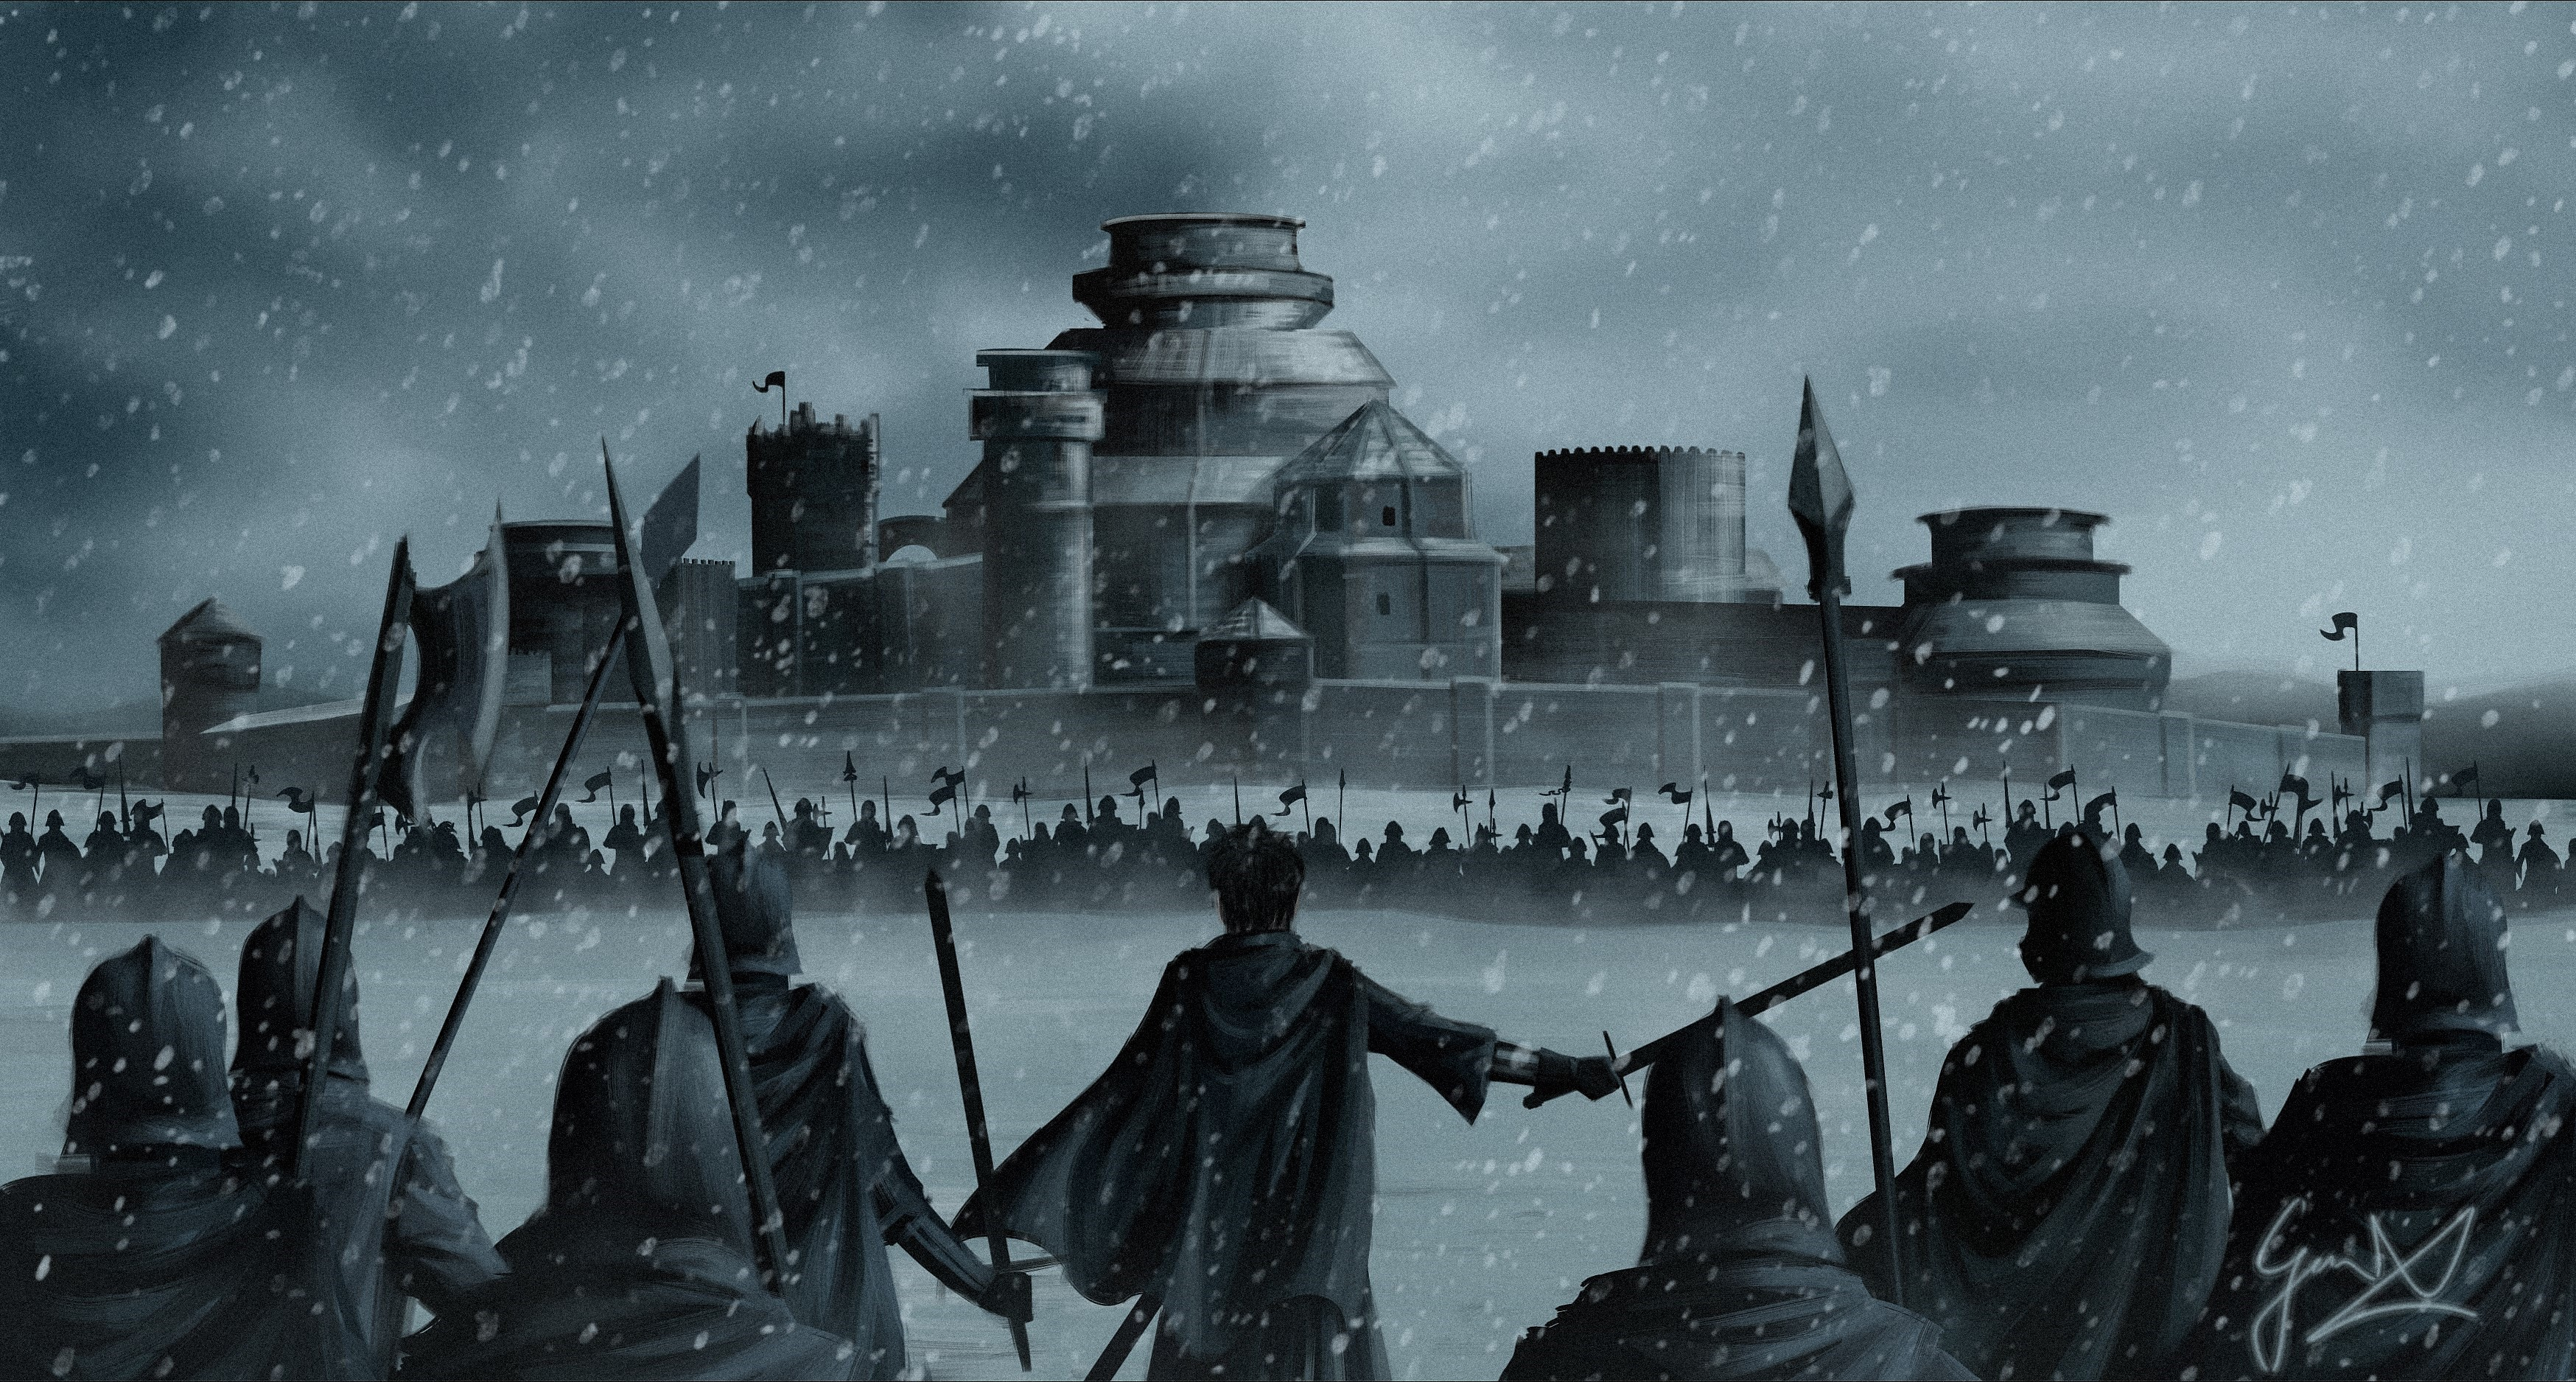 Game of Thrones: Battle of Winterfell by ManNamedGeorge